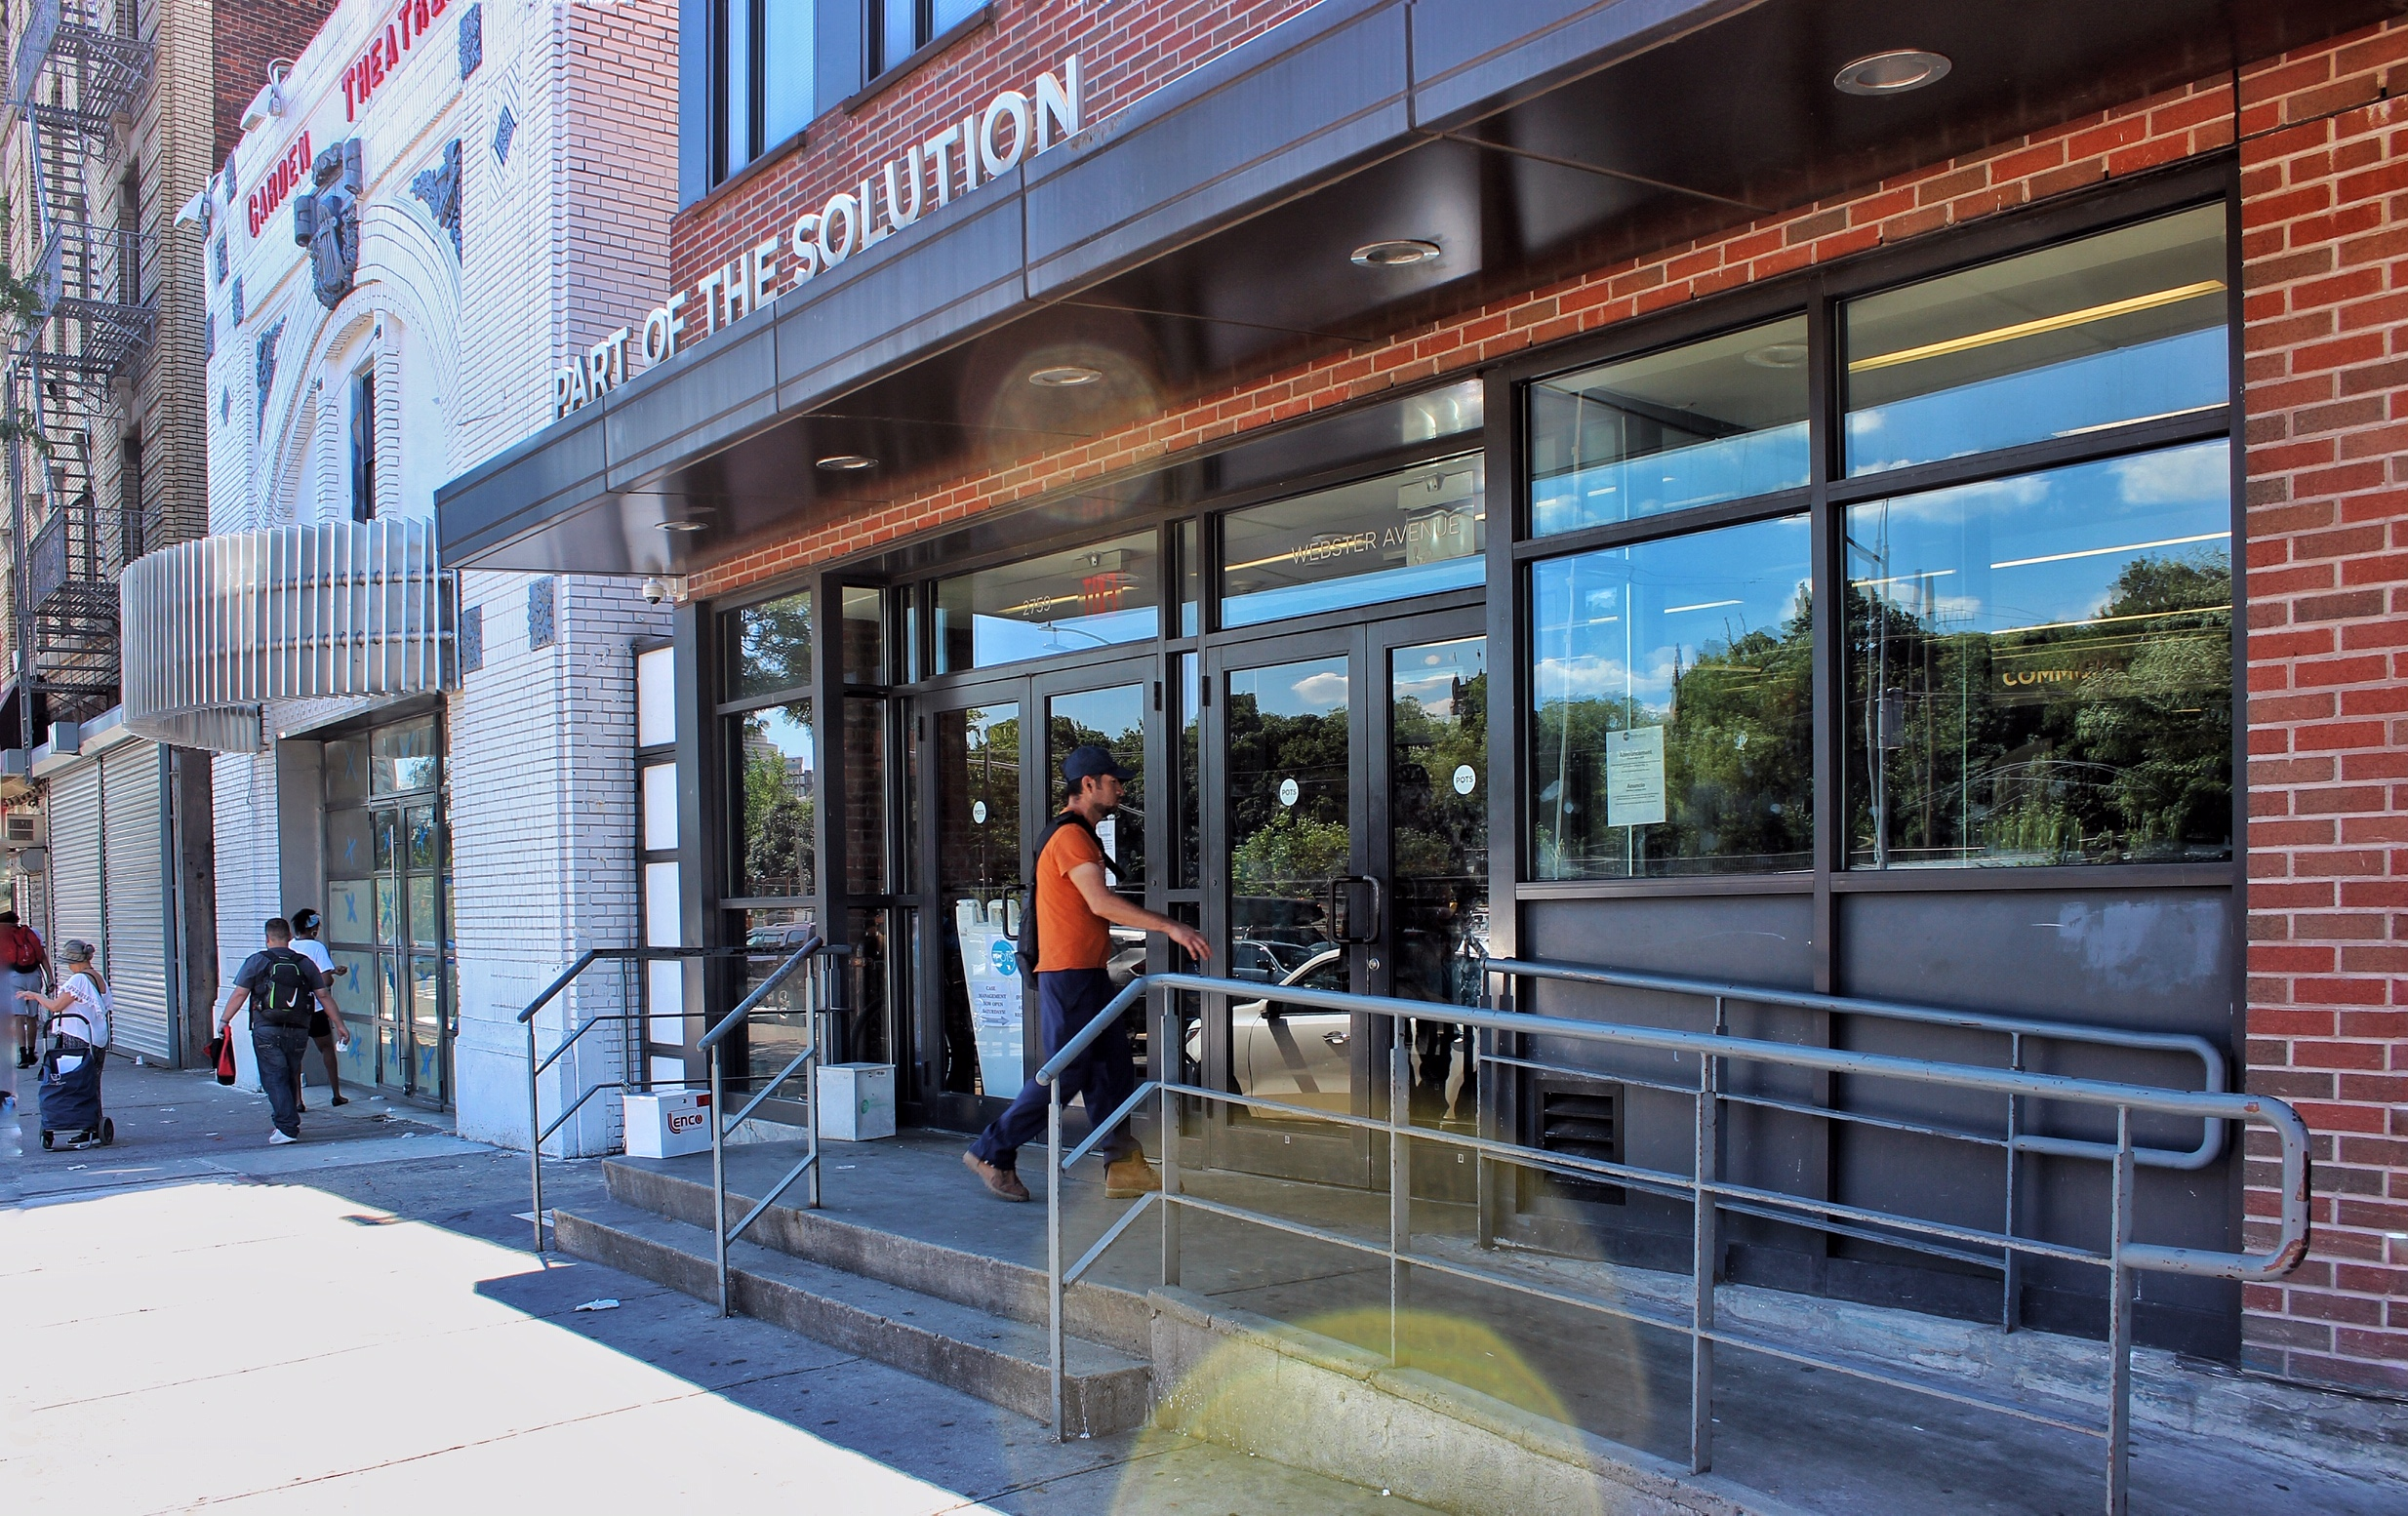 Part of the Solution (POTS) in the Bronx